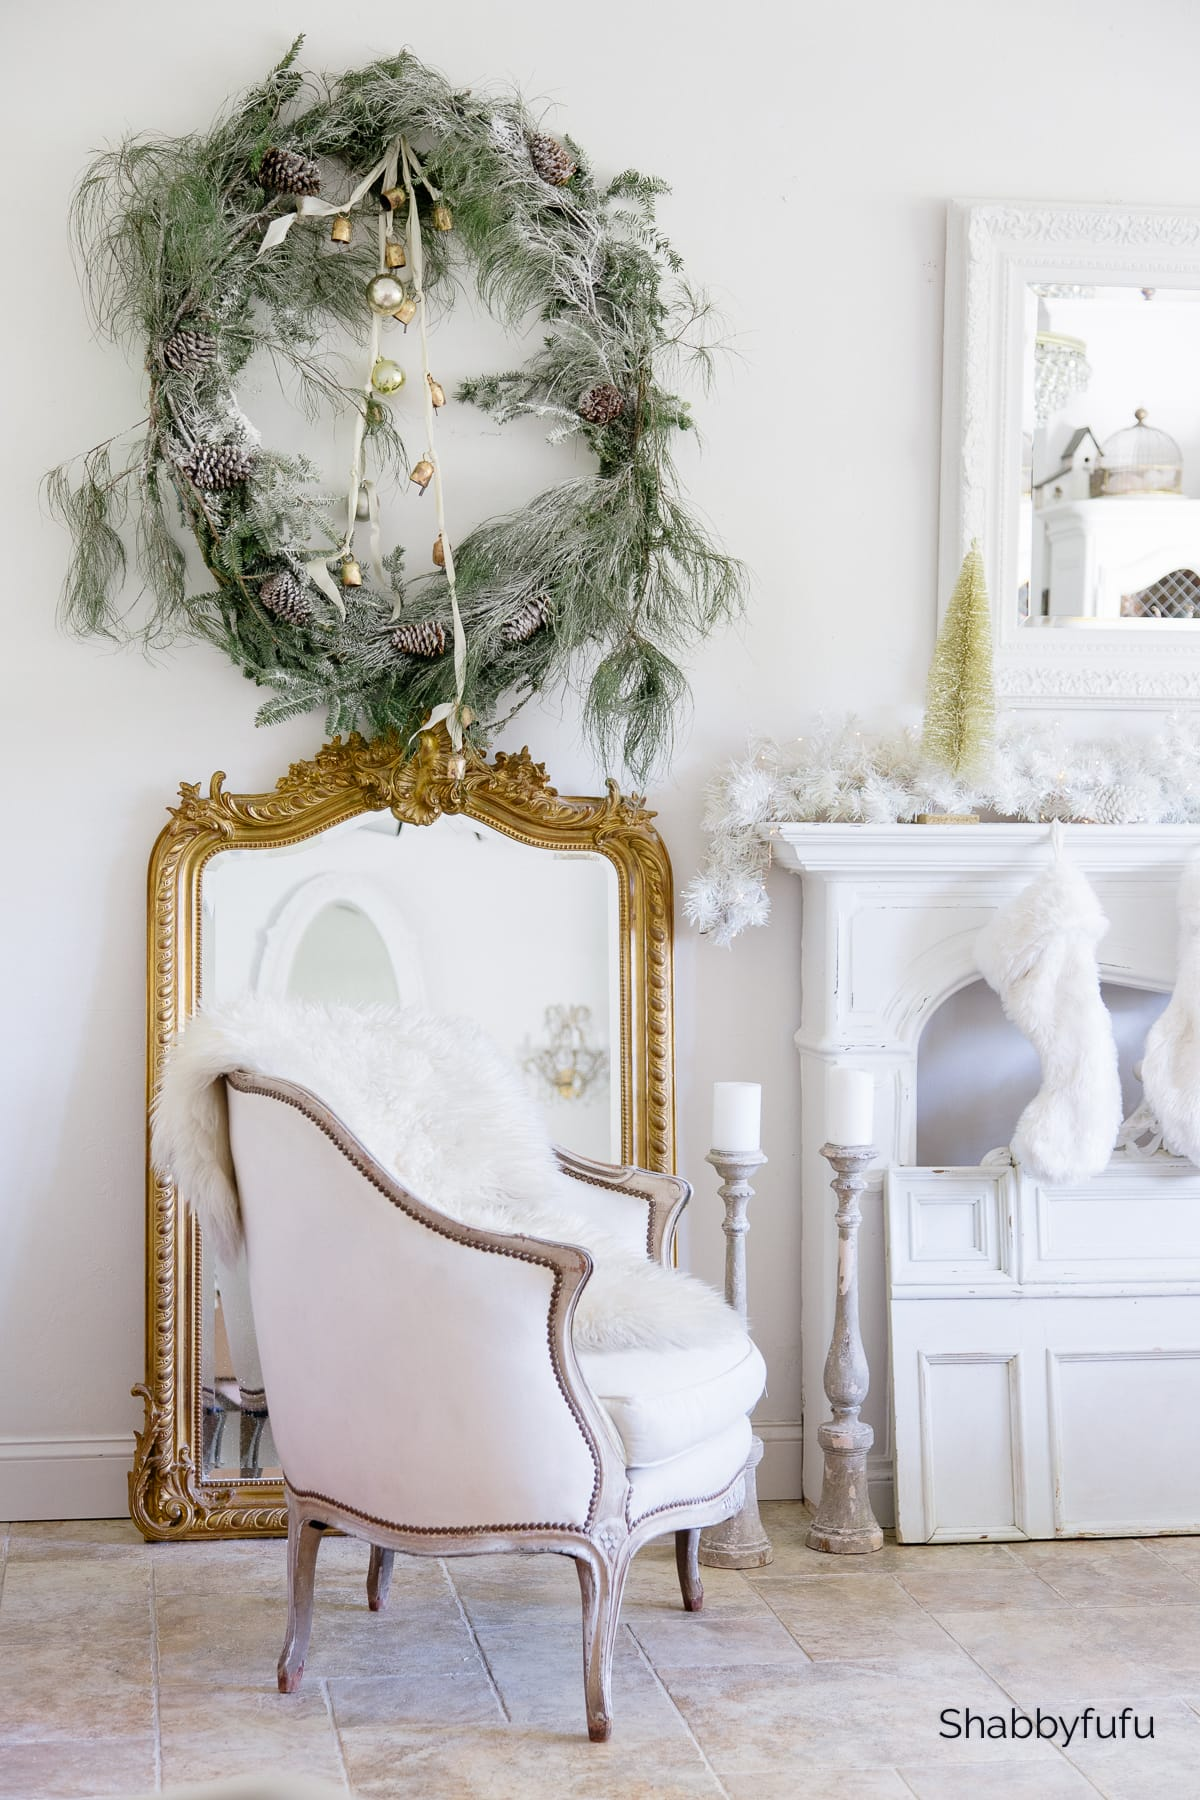 Make A Christmas Wreath From Free Tree Scraps